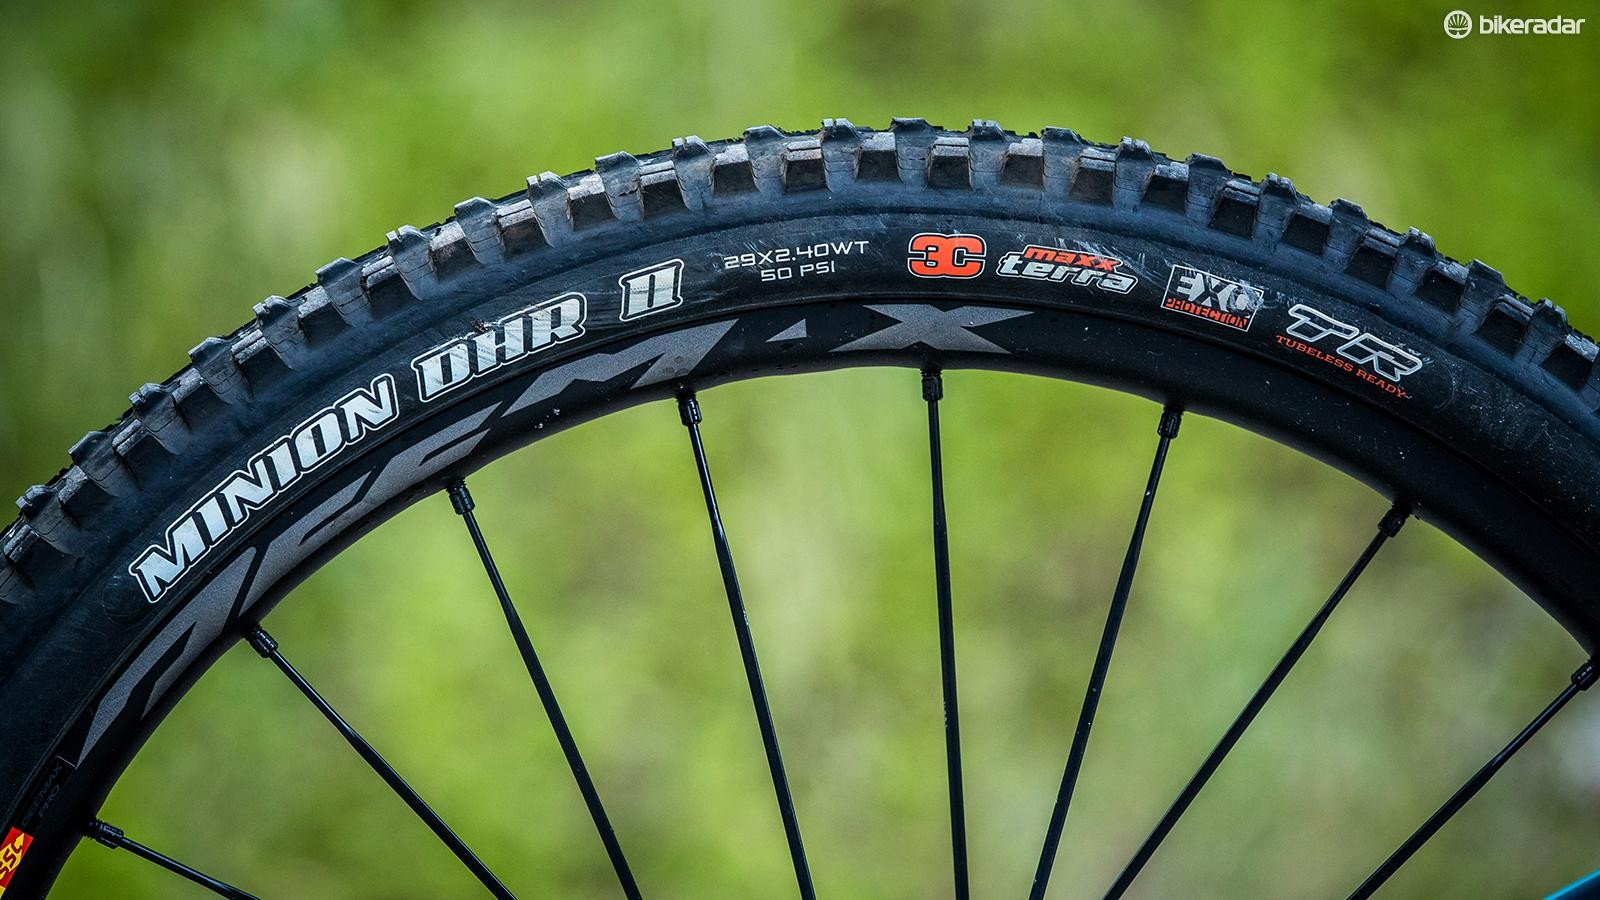 The 29in wheels roll on Maxxis Minion DHR II tyres